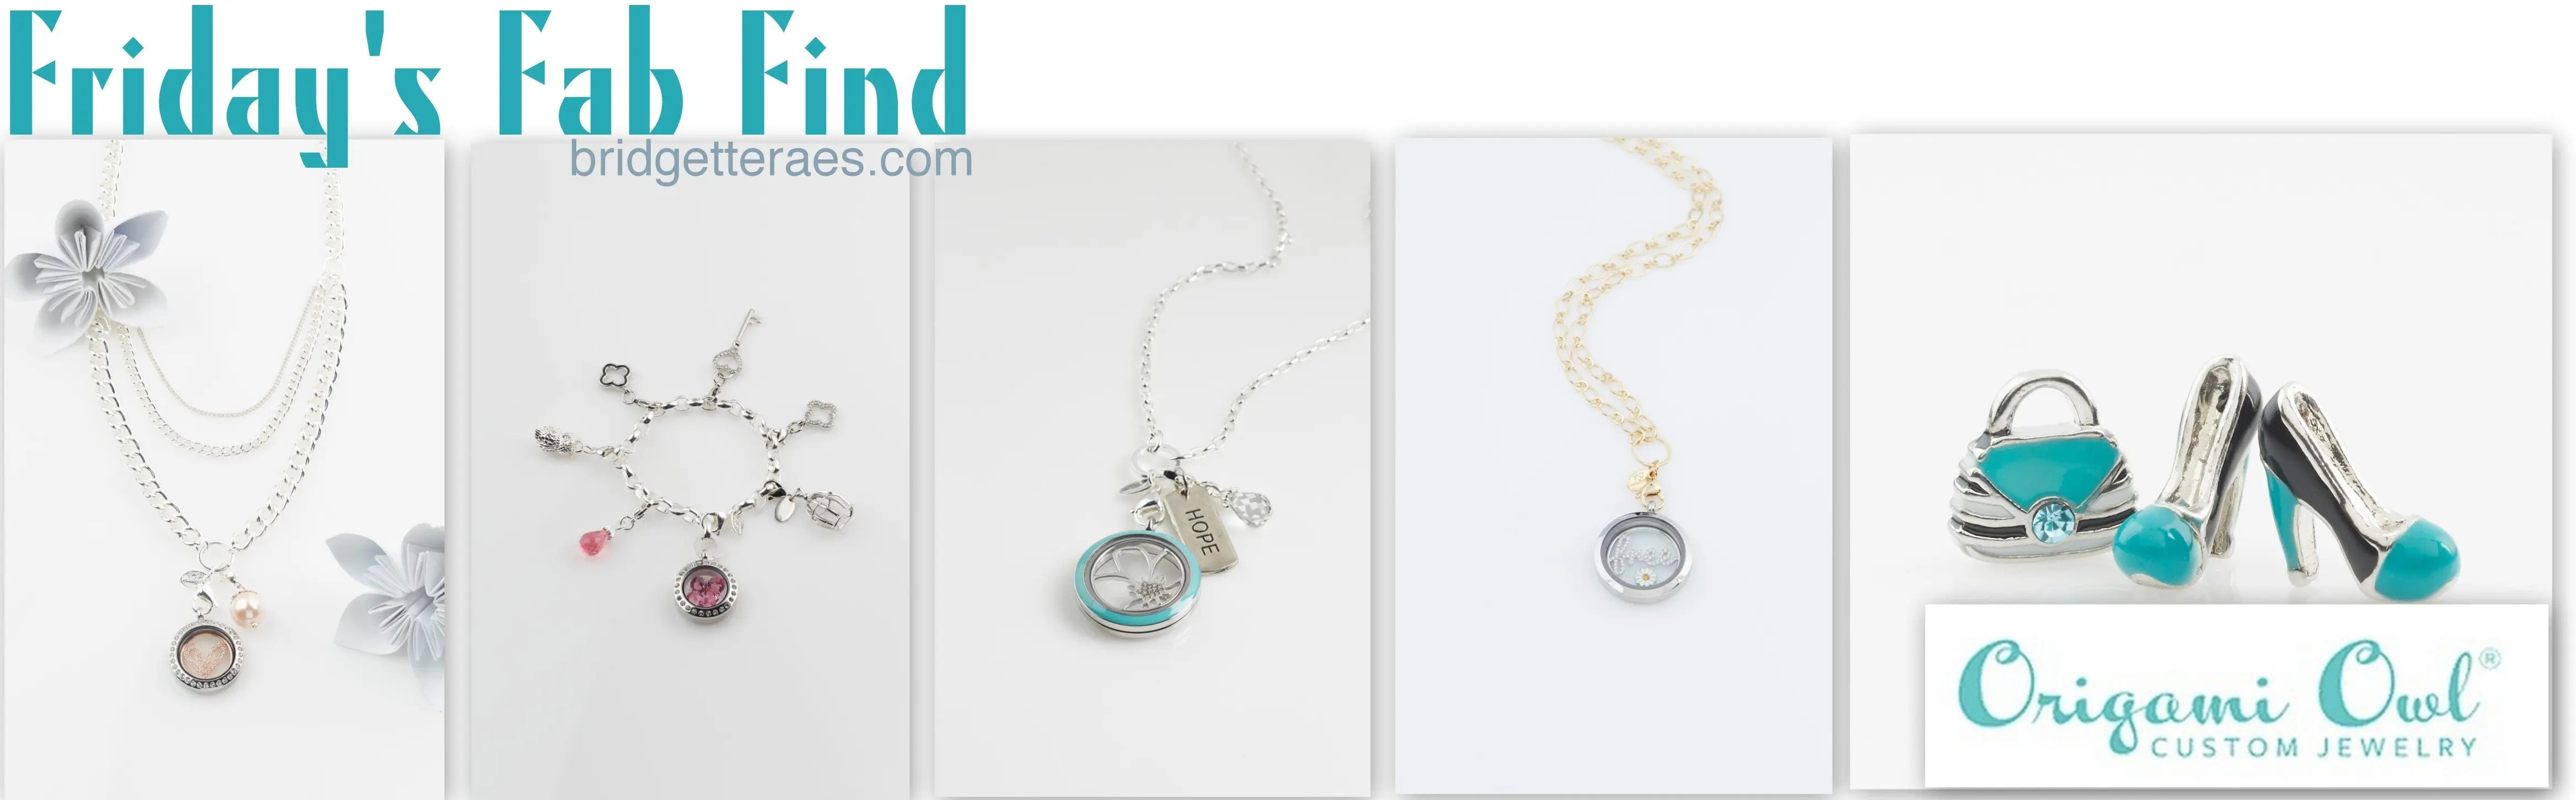 Fridays fab find origami owl origami owl i love the idea of charm bracelets but i dont own any i dont like wearing anything on my wrists in interferes with my typing certainly not jeuxipadfo Choice Image